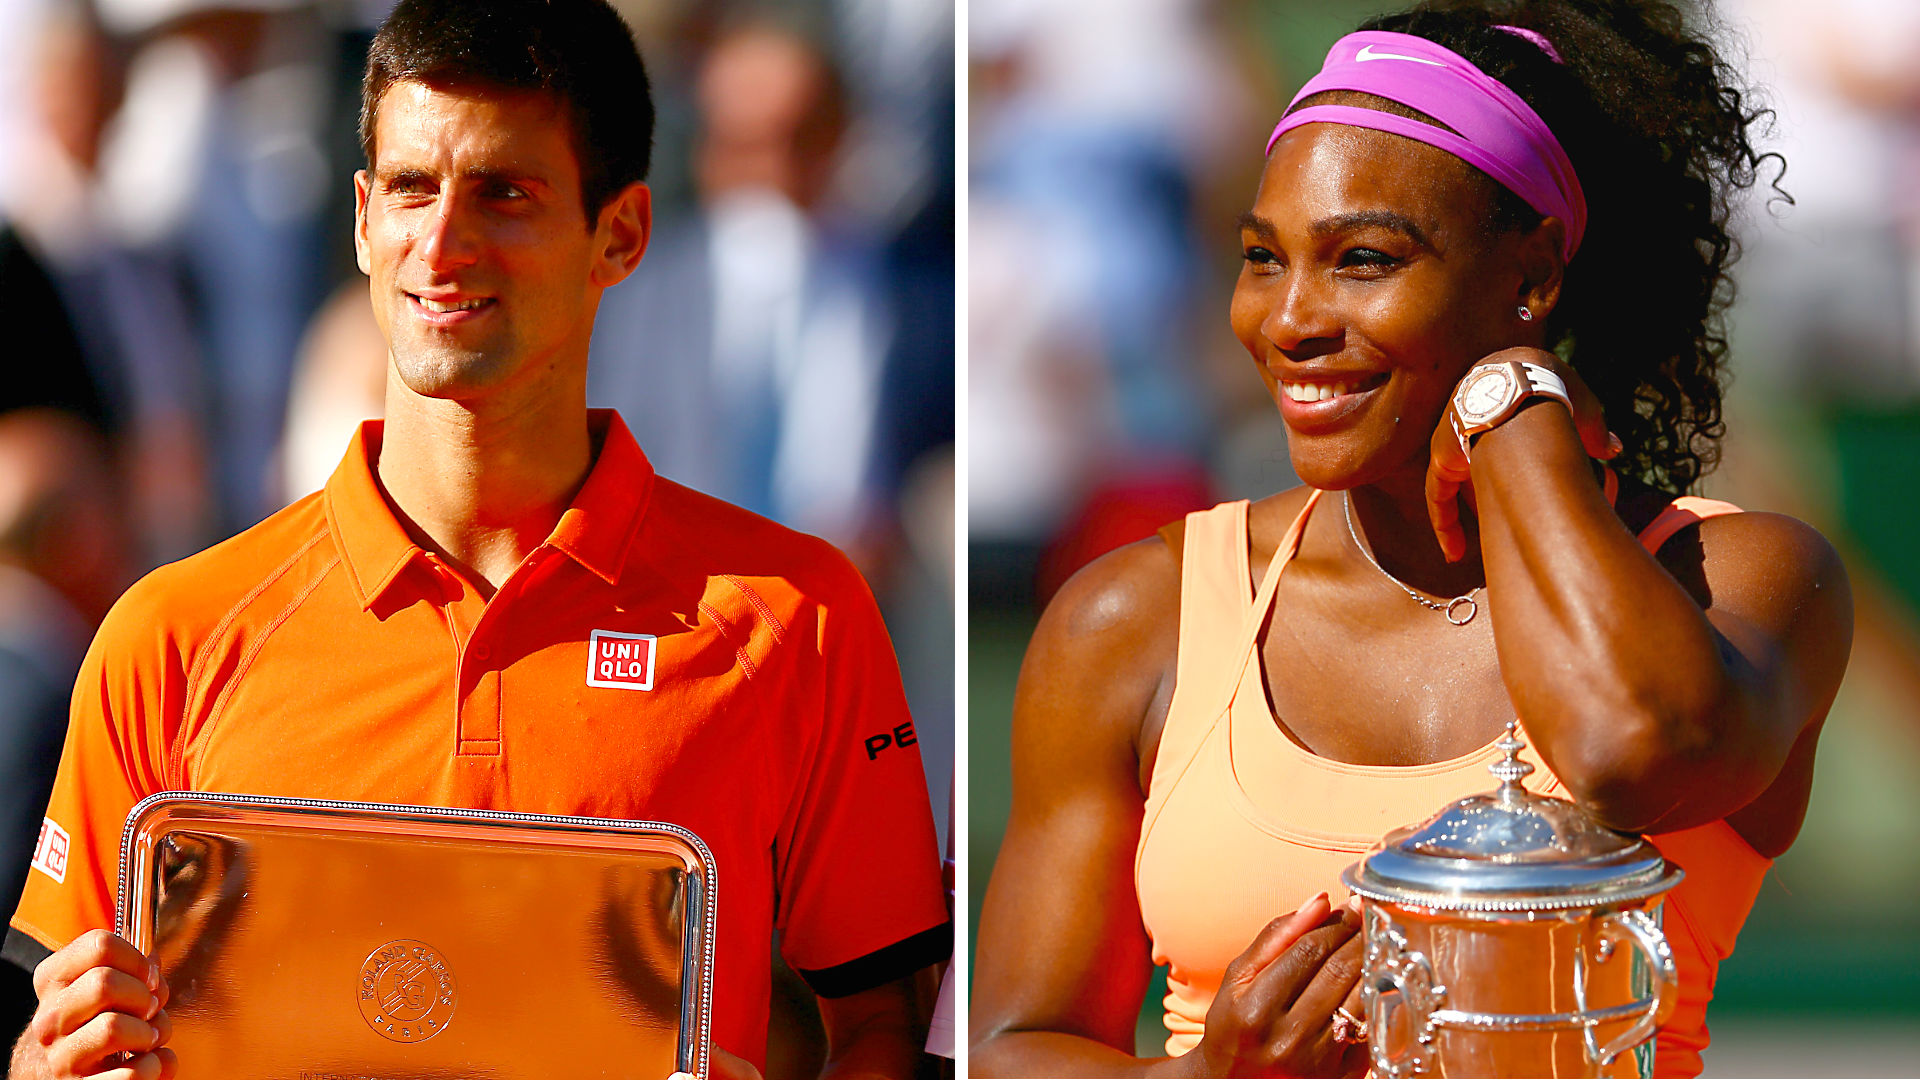 djokovic-williams062415-getty-ftr.jpg